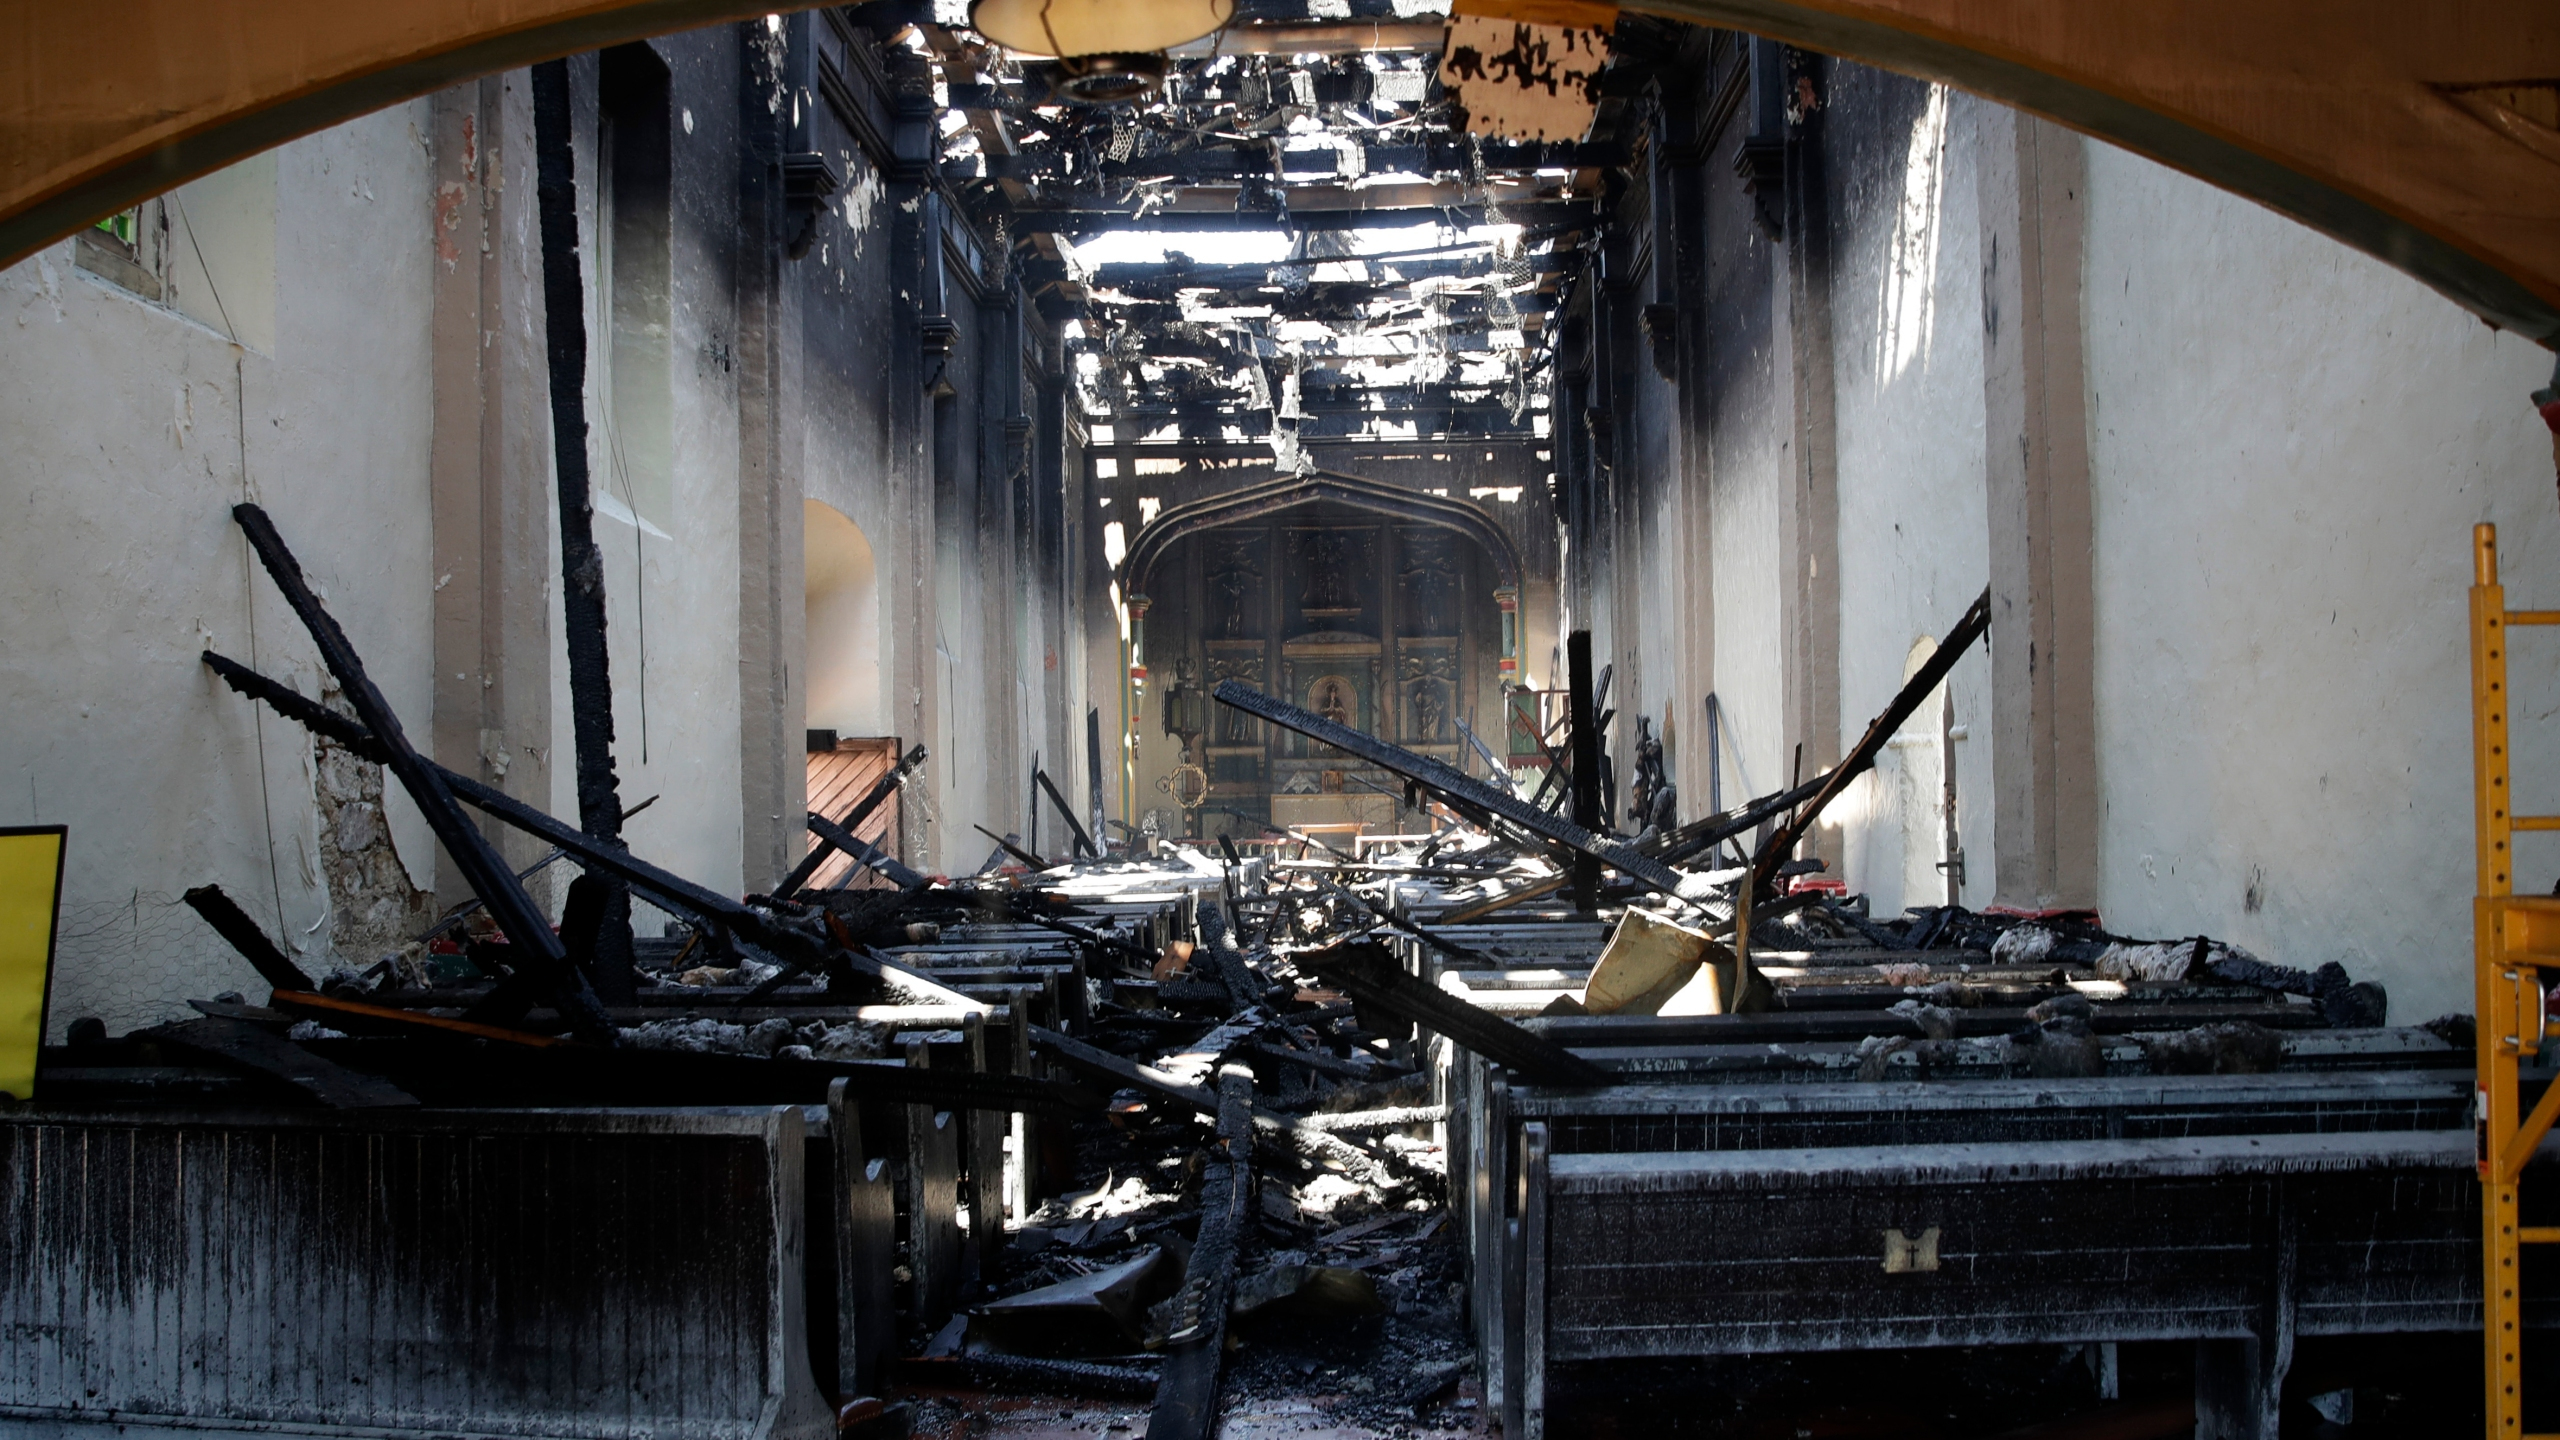 The interior of the San Gabriel Mission is damaged following a morning fire, Saturday, July 11, 2020, in San Gabriel. (AP Photo/Marcio Jose Sanchez)